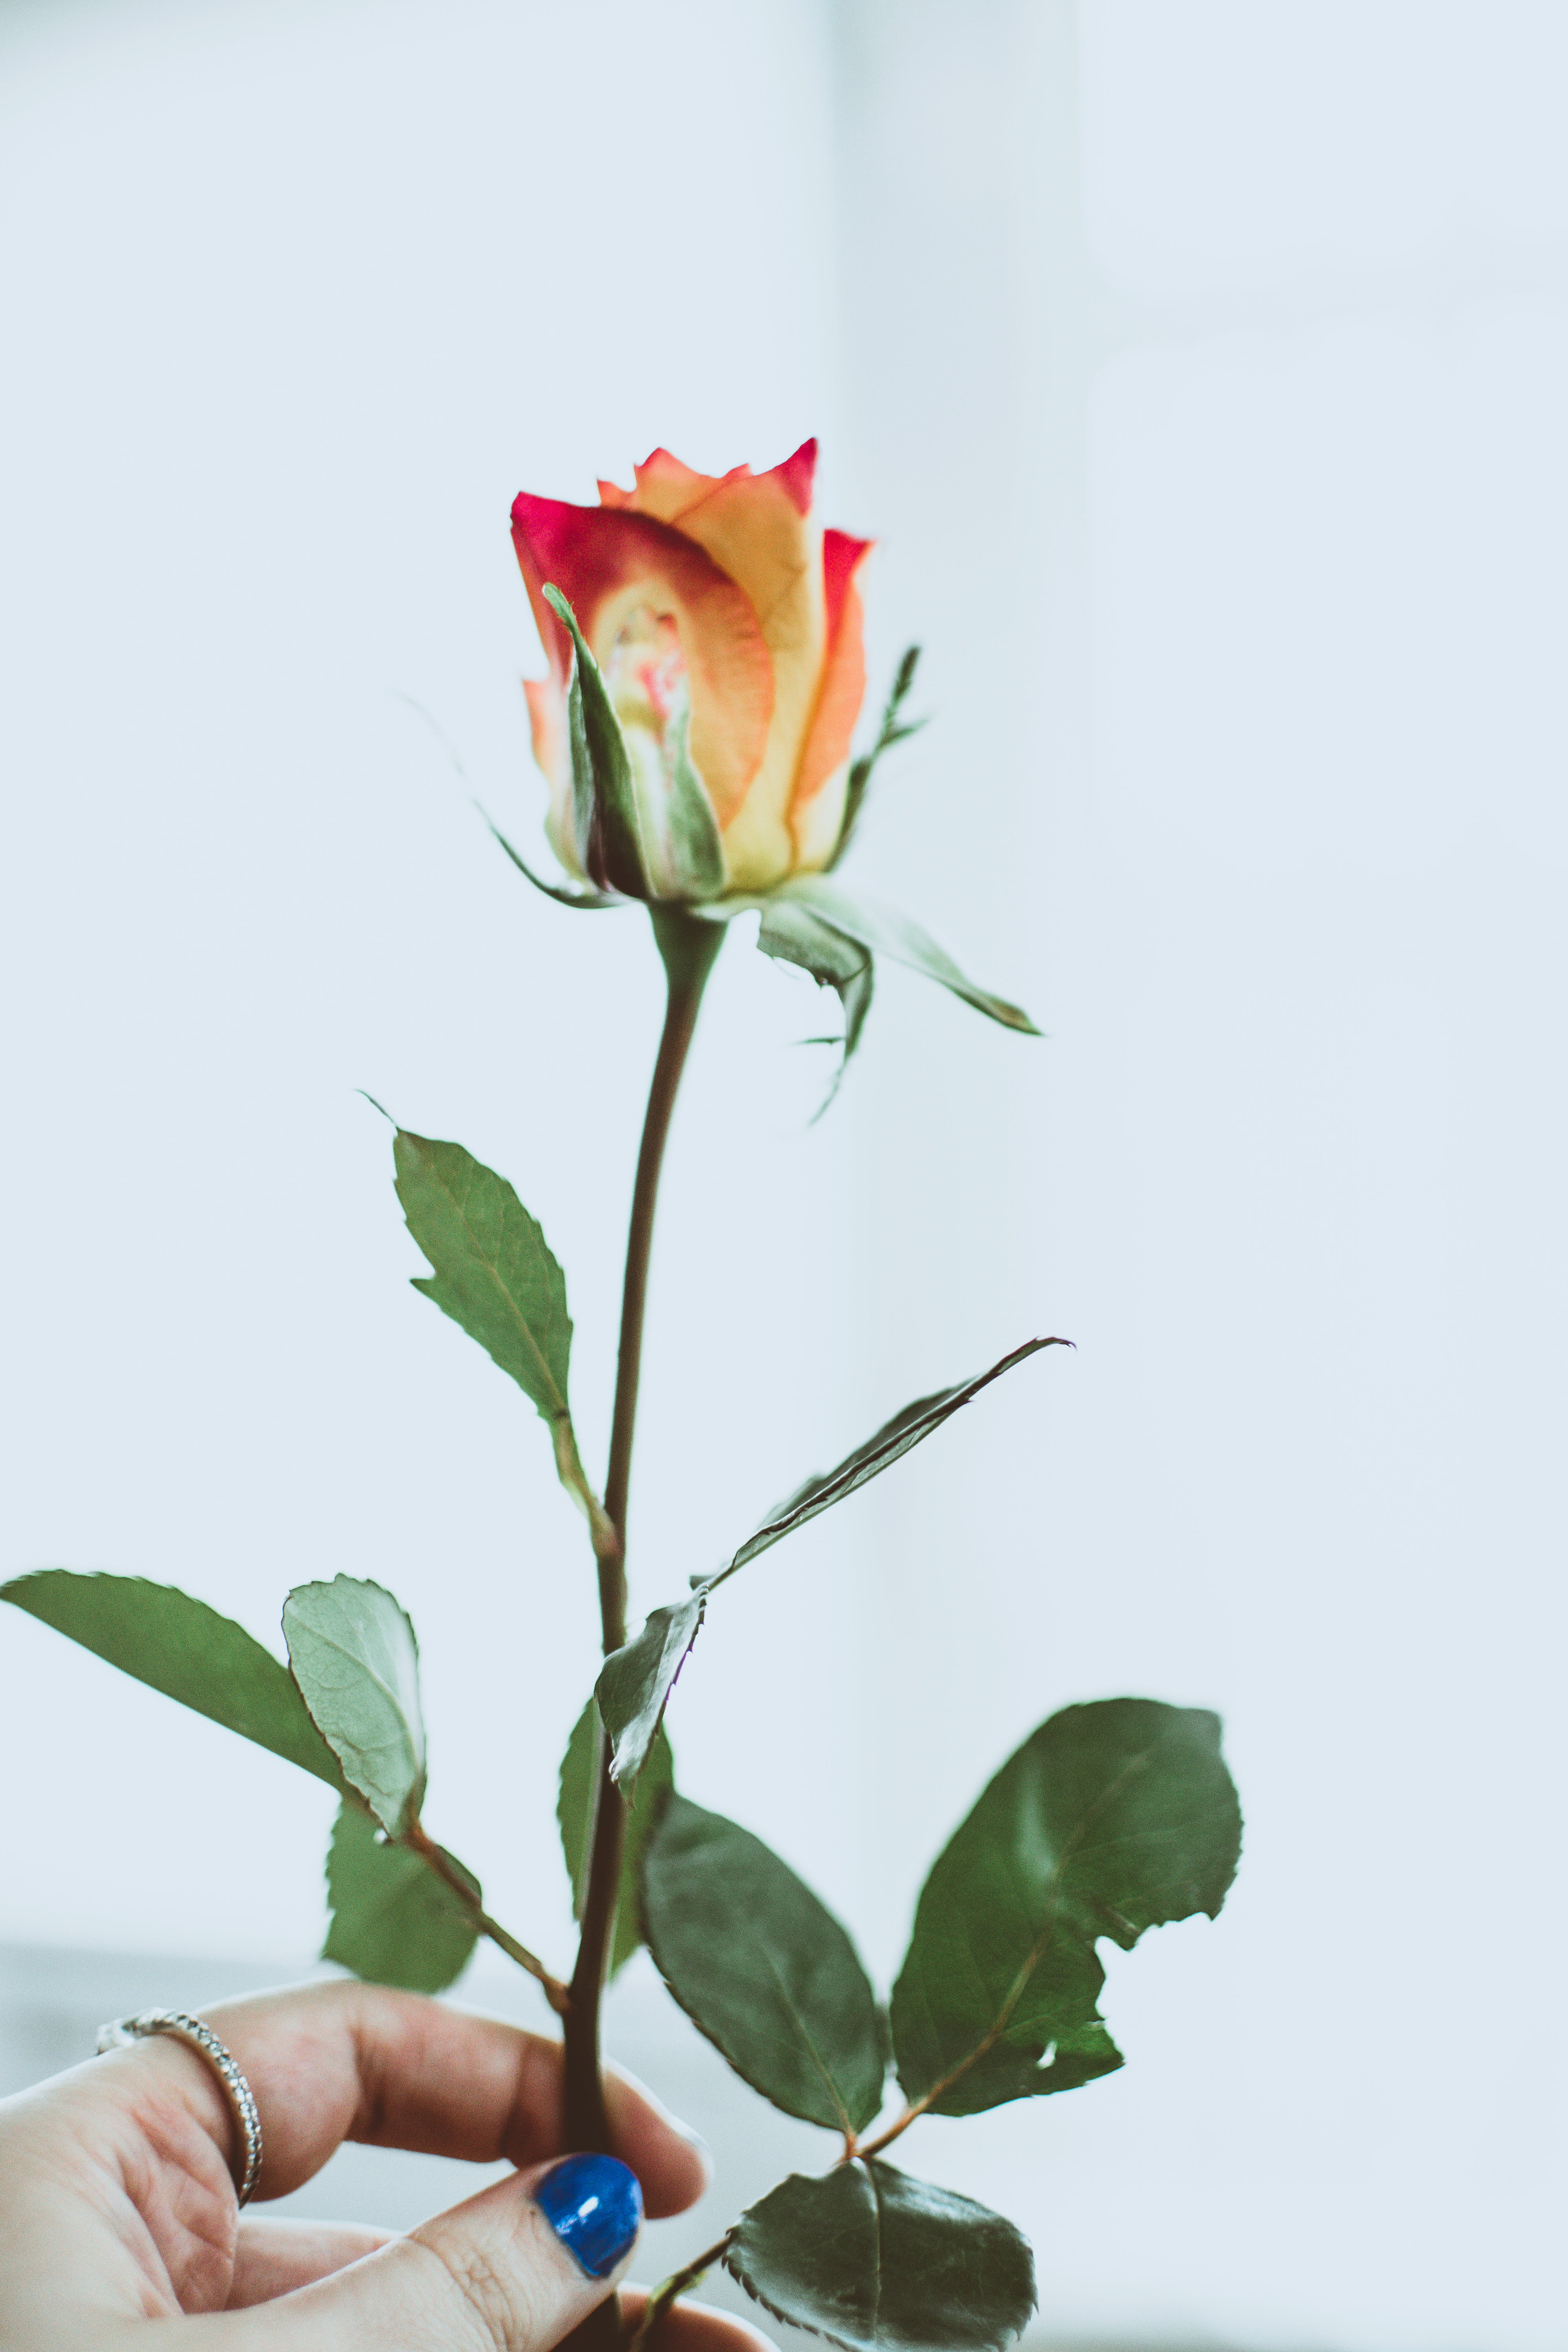 Close-Up Photography of Person Holding Flower